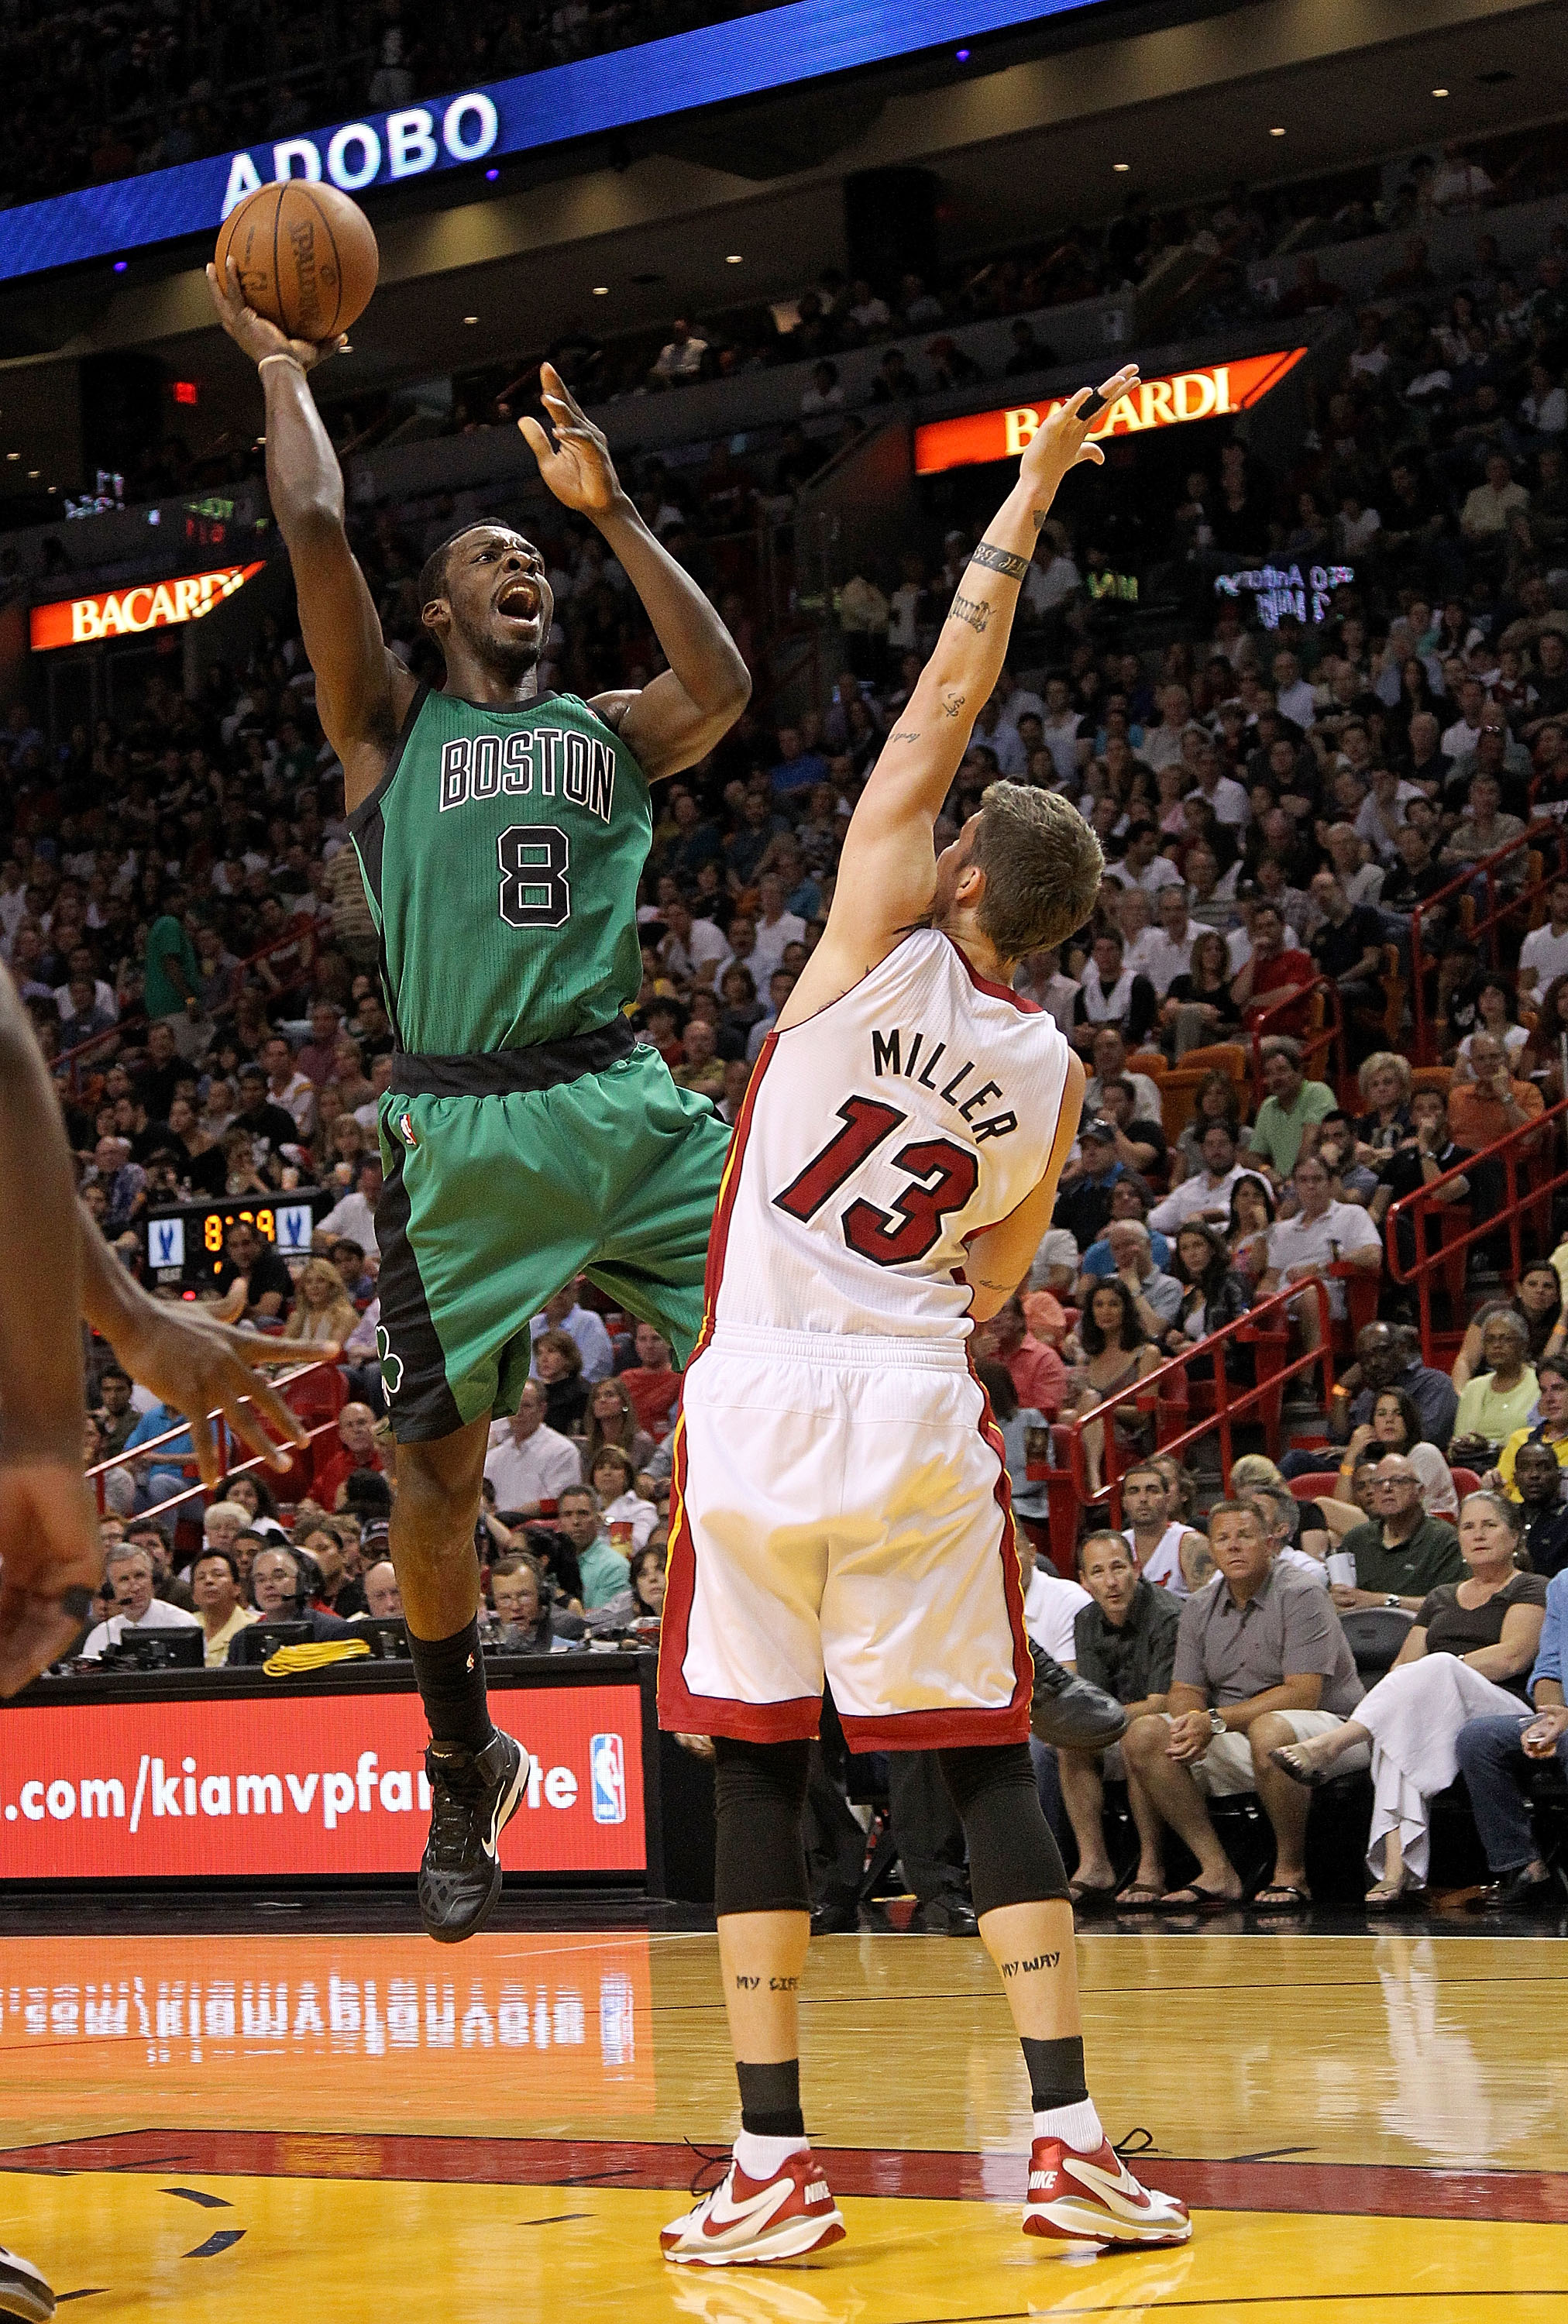 MIAMI, FL - APRIL 10:  Jeff Green #8 of the Boston Celtics shoots over Mike Miller #13 of the Miami Heat during a game at American Airlines Arena on April 10, 2011 in Miami, Florida. NOTE TO USER: User expressly acknowledges and agrees that, by downloadin